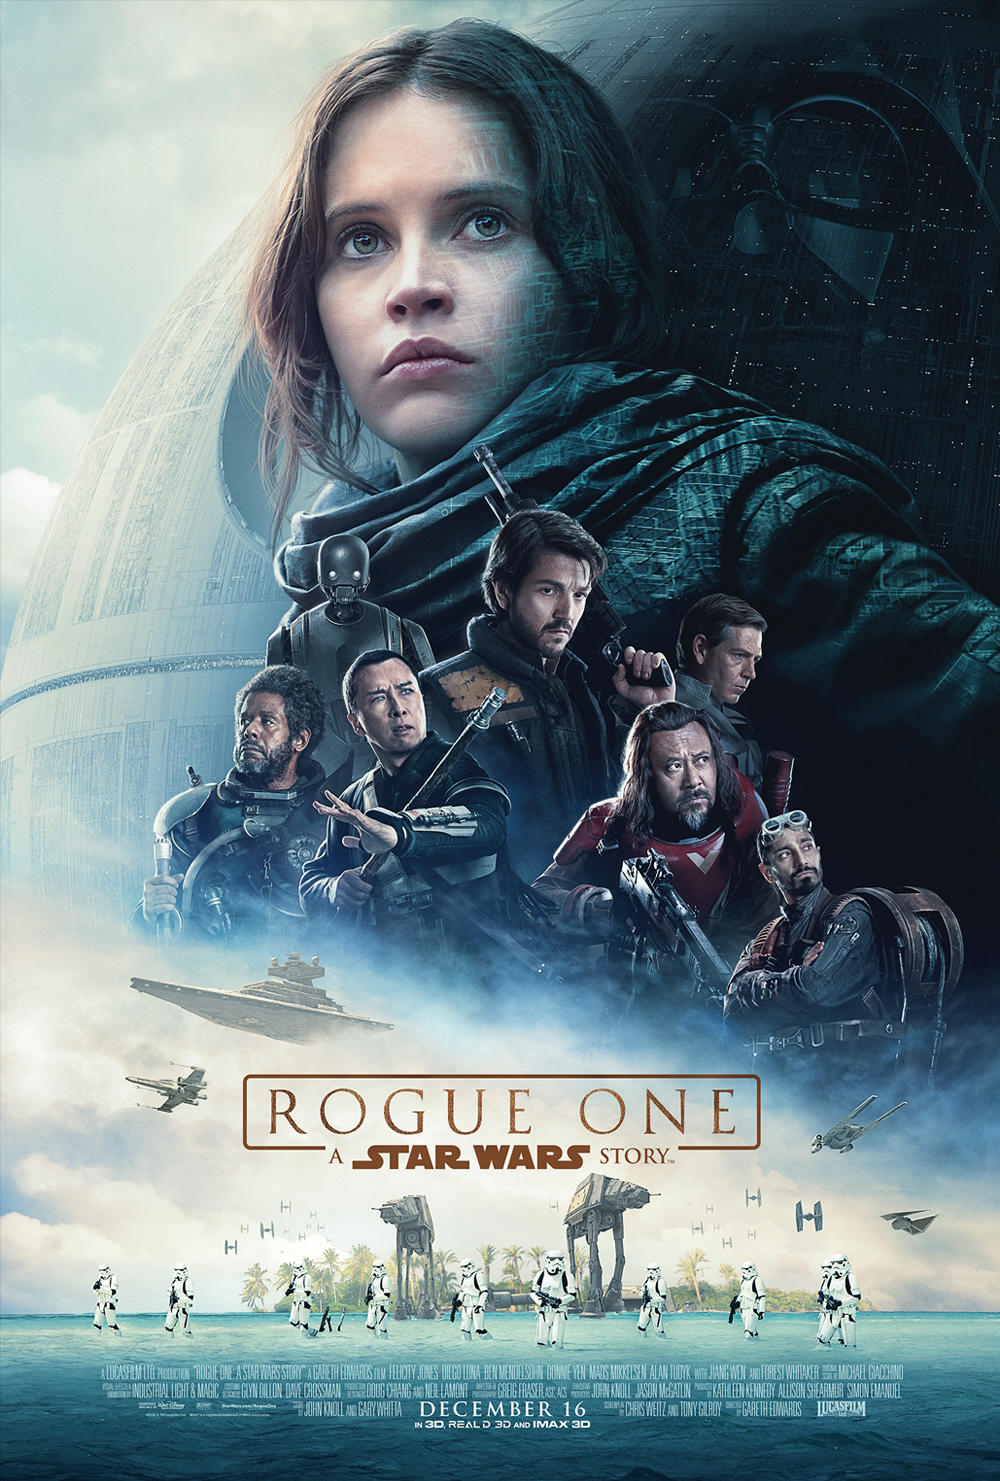 rogue_one_poster.jpg